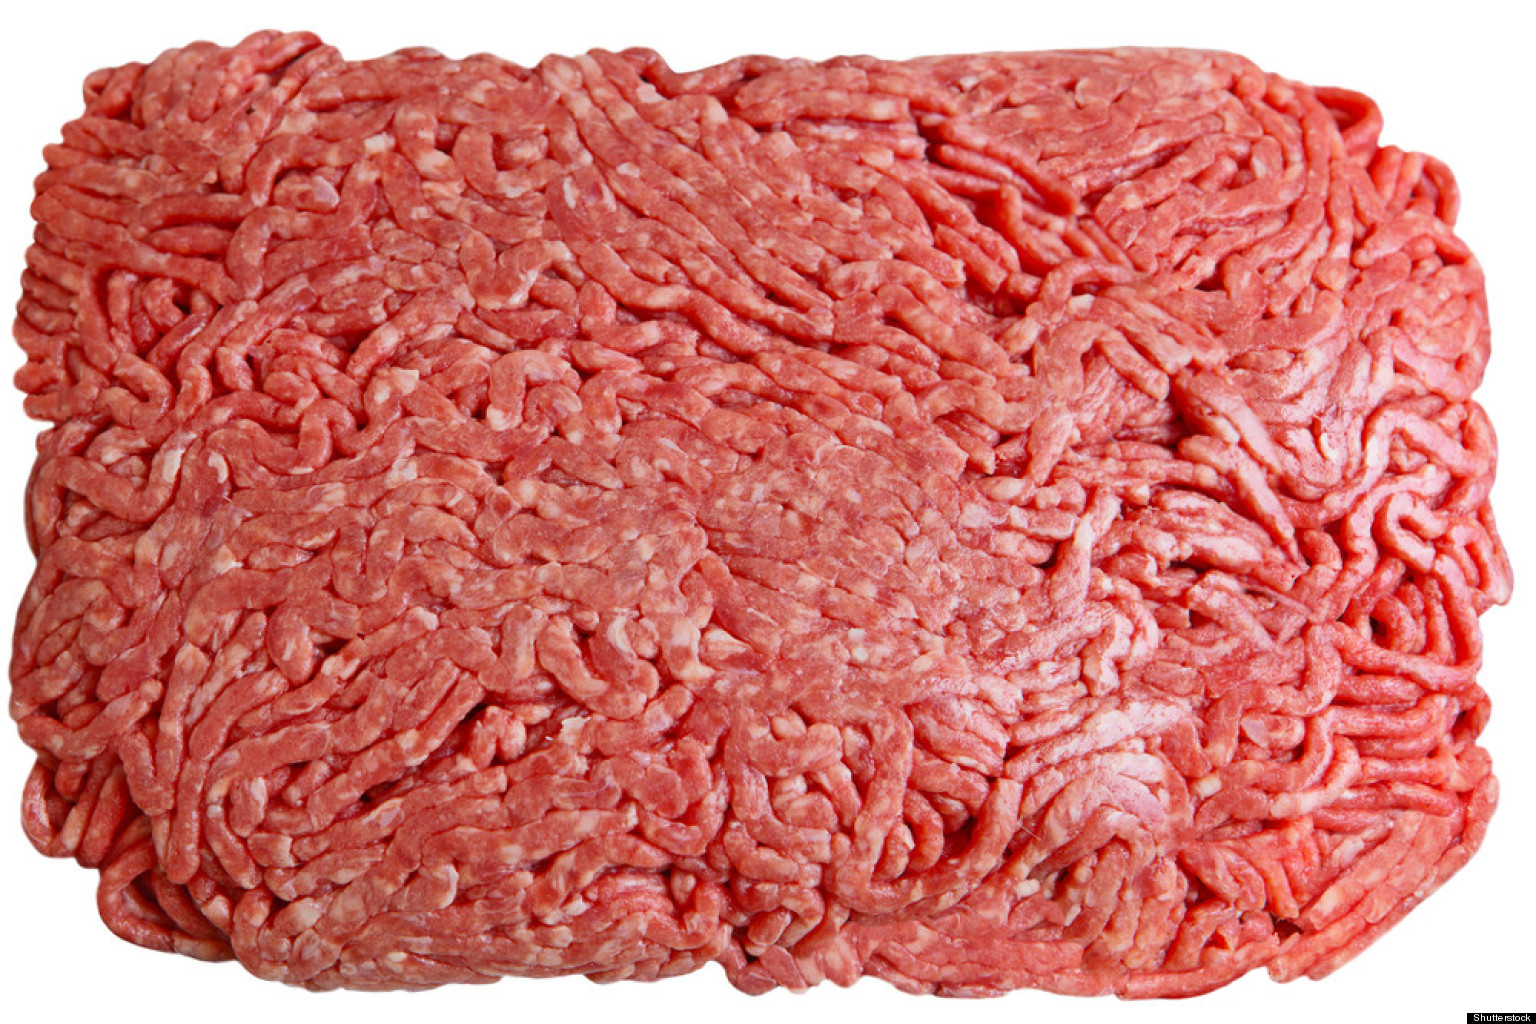 XL Foods Ground Beef Recall: Beef In E. Coli Scare Sold ...